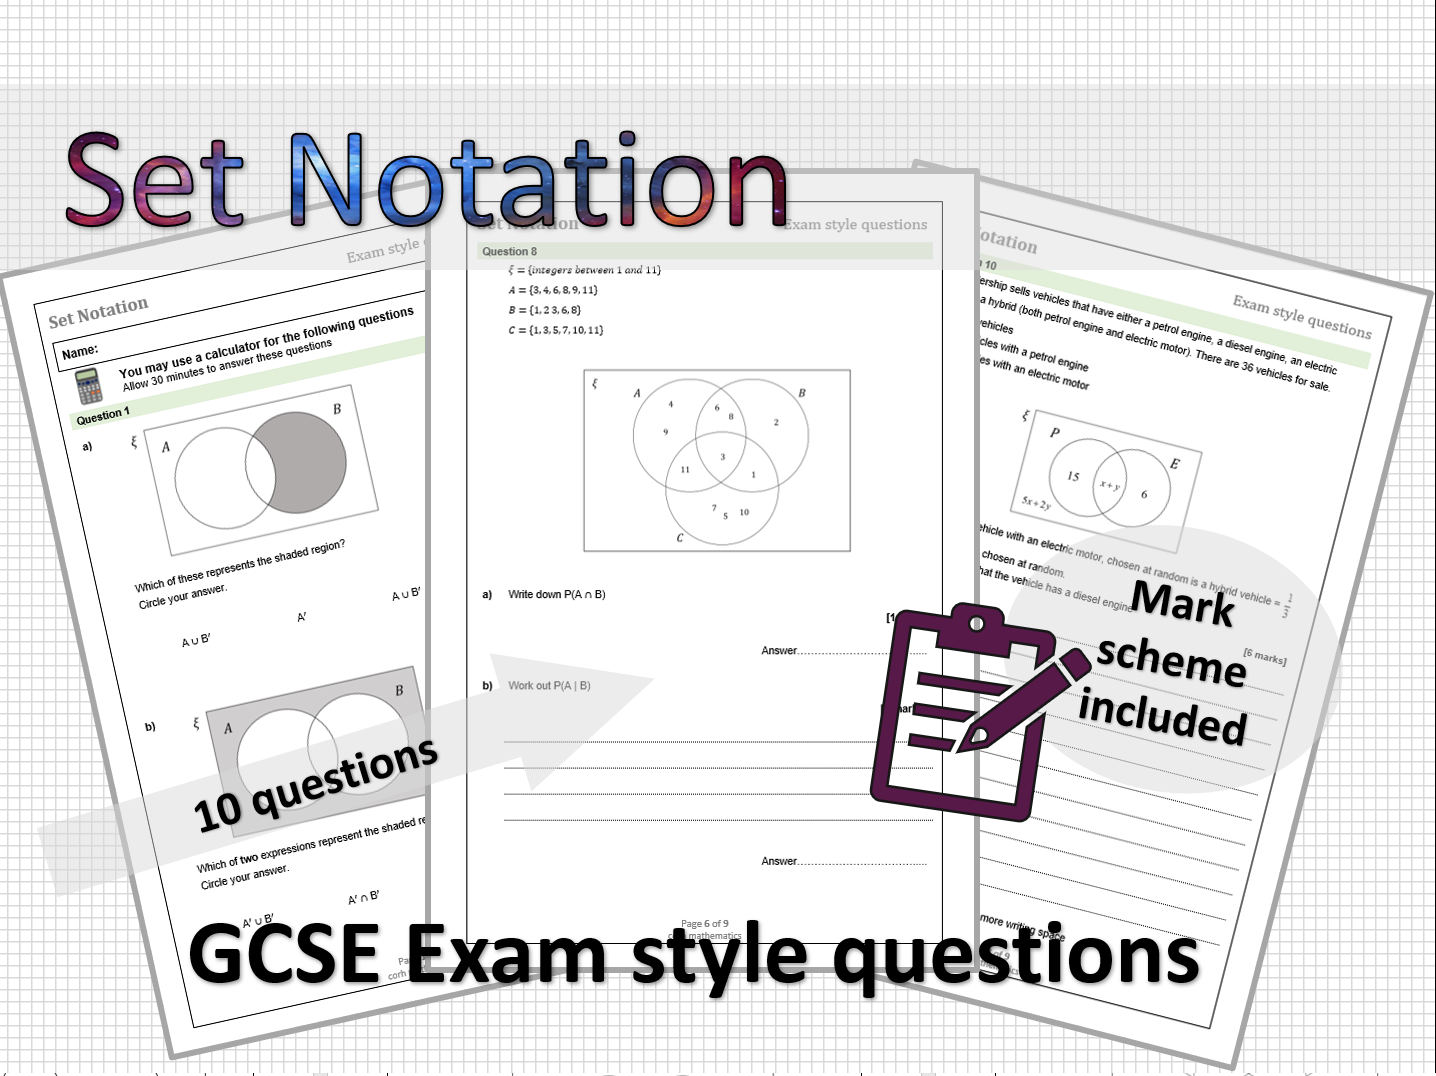 Set Notation - exam style questions